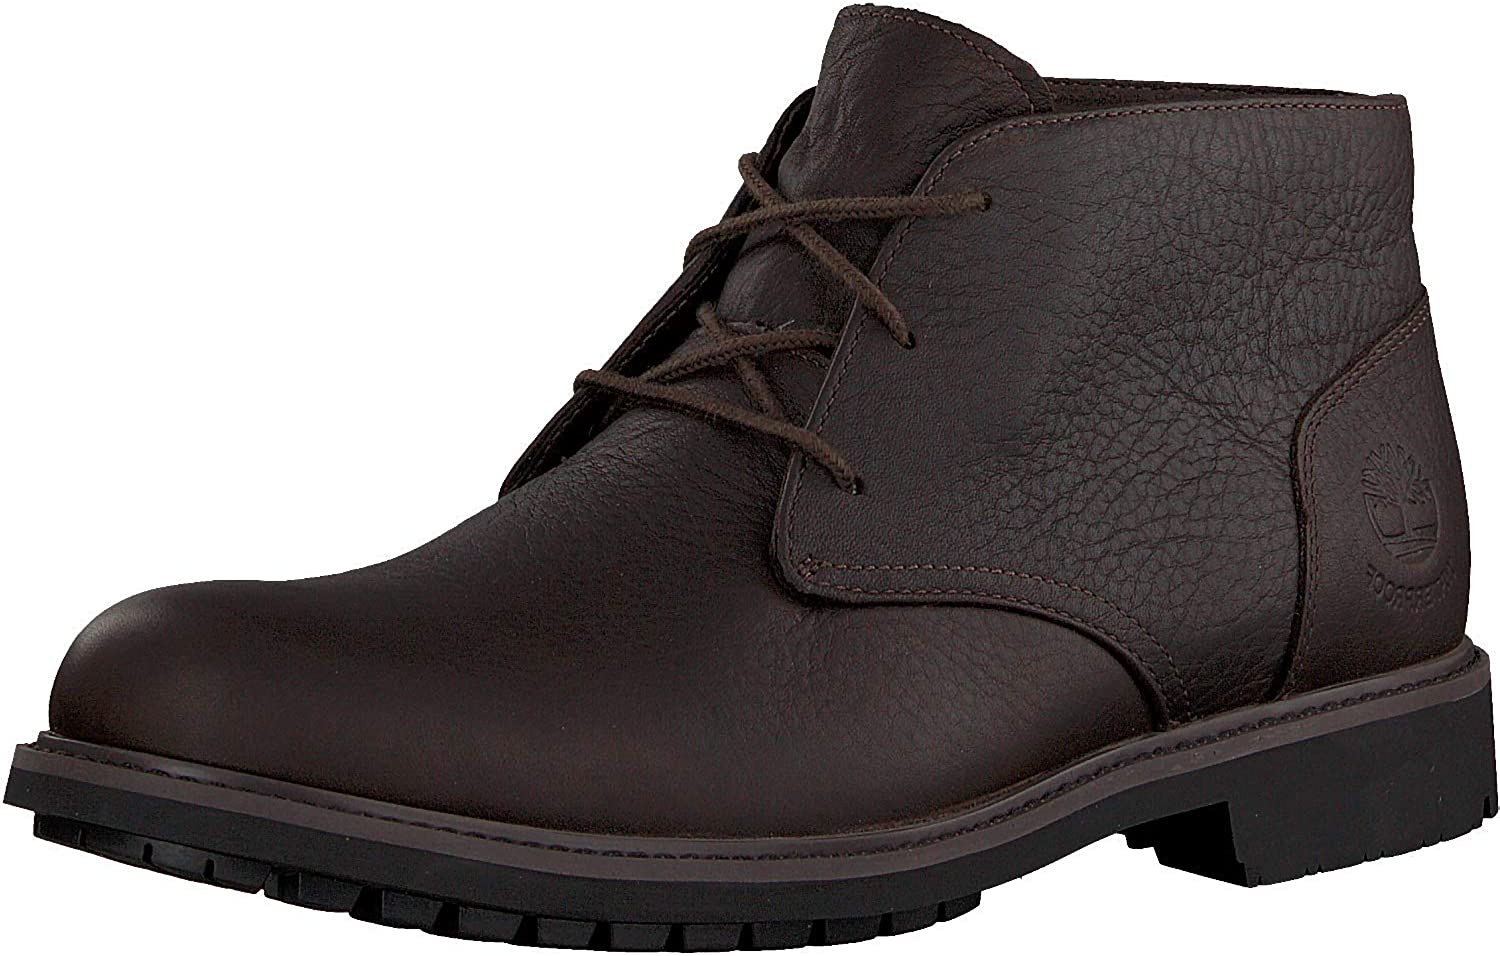 Timberland Stormbucks Chukka Ankle Boots/Boots Men Brown/Dark - 10 - Mid Boots Shoes